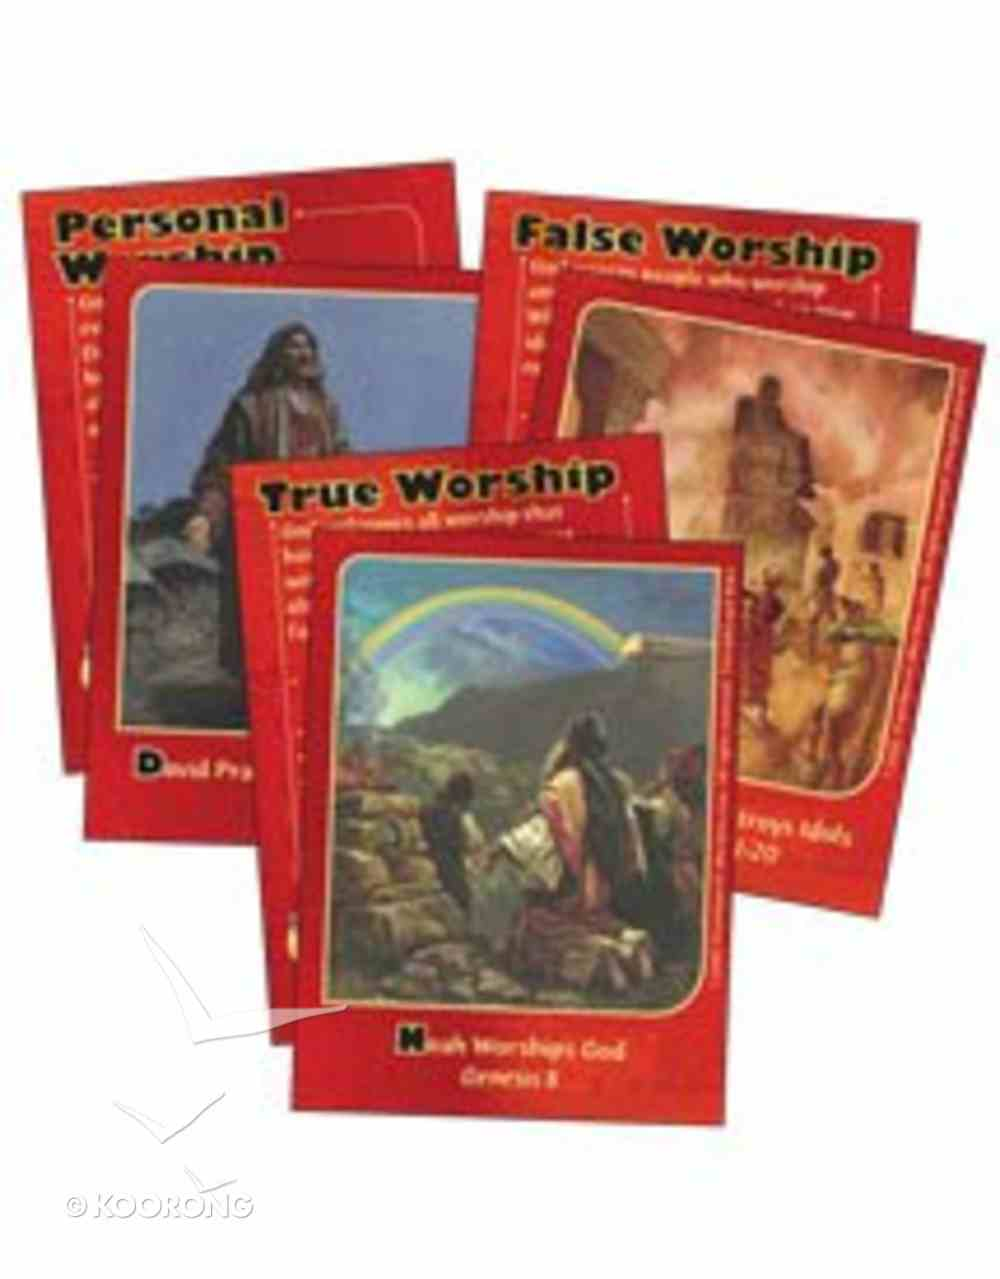 Dlc C1: Discovering God's Greatness Bible Cards Ages 6-8 (At Worship With God (Discipleland Level 1, Ages 6-8, Qtrs Abcd Series) Pack